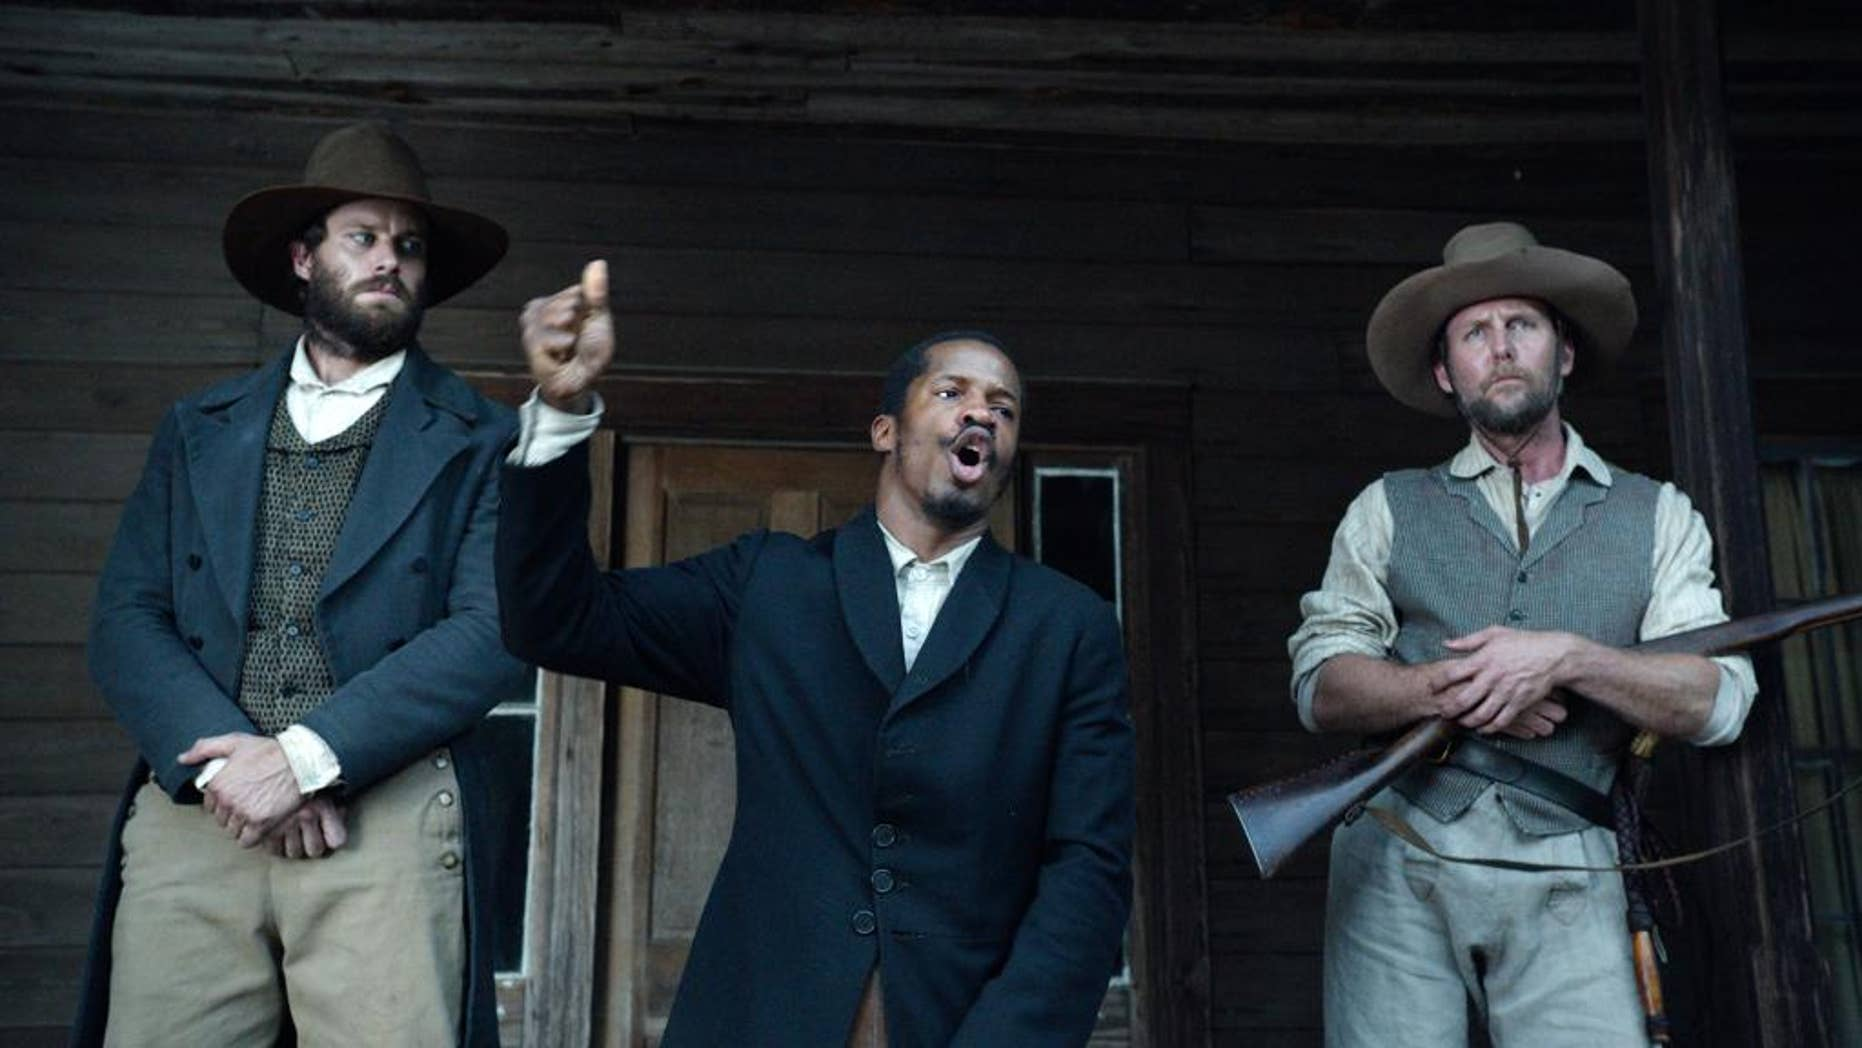 """In this image released by Fox Searchlight Pictures, from left, Armie Hammer portrays Samuel Turner, Nate Parker portrays Nat Turner and Jayson Warner Smith portrays Earl Fowler in a scene from """"The Birth of a Nation,"""" opening Oct. 7, 2016. Parker said he hopes the movie will inspire people to challenge injustices worldwide and said the lecture series would help. (Fox Searchlight Pictures via AP)"""